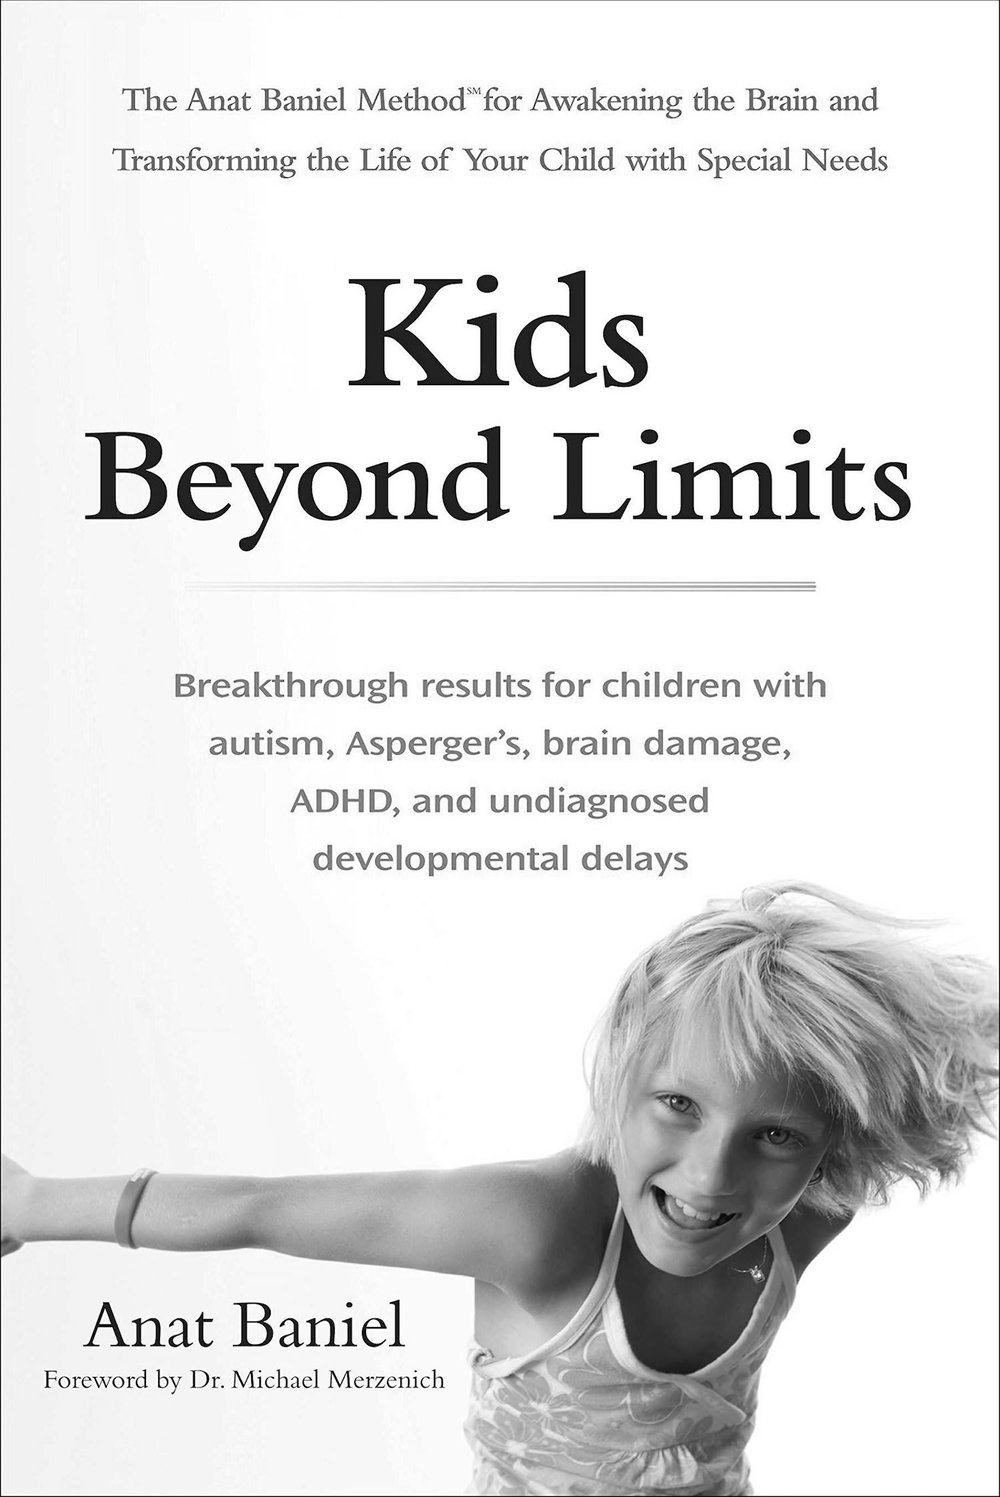 KIDS BEYOND LIMITS   The Anat Baniel Method for Awakening the Brain and Transforming the Life of Your Child With Special Needs  by Anat Baniel